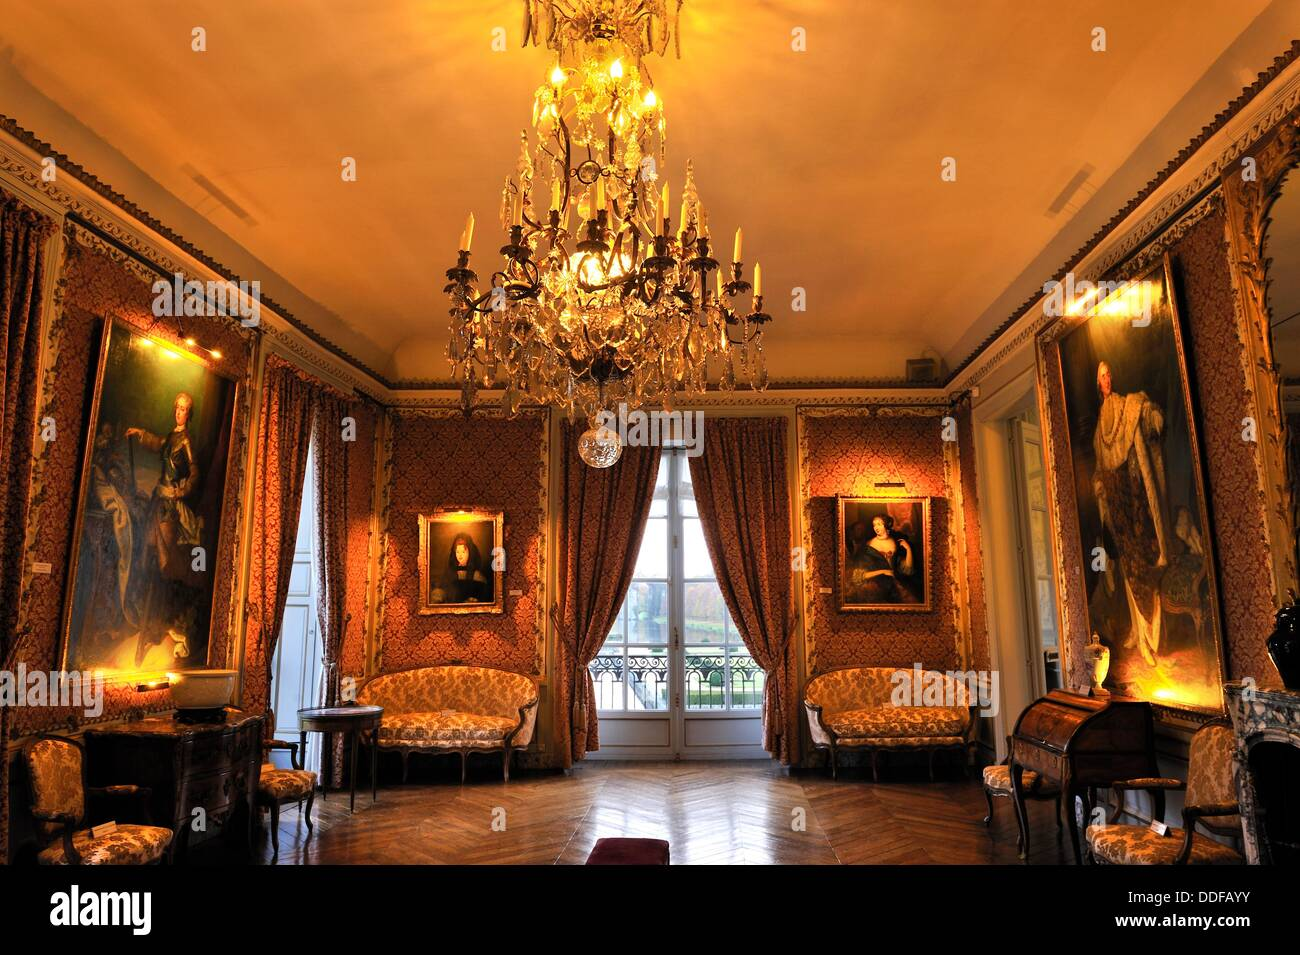 the grand salon chateau de maintenon eure et loir department stock photo royalty free image. Black Bedroom Furniture Sets. Home Design Ideas